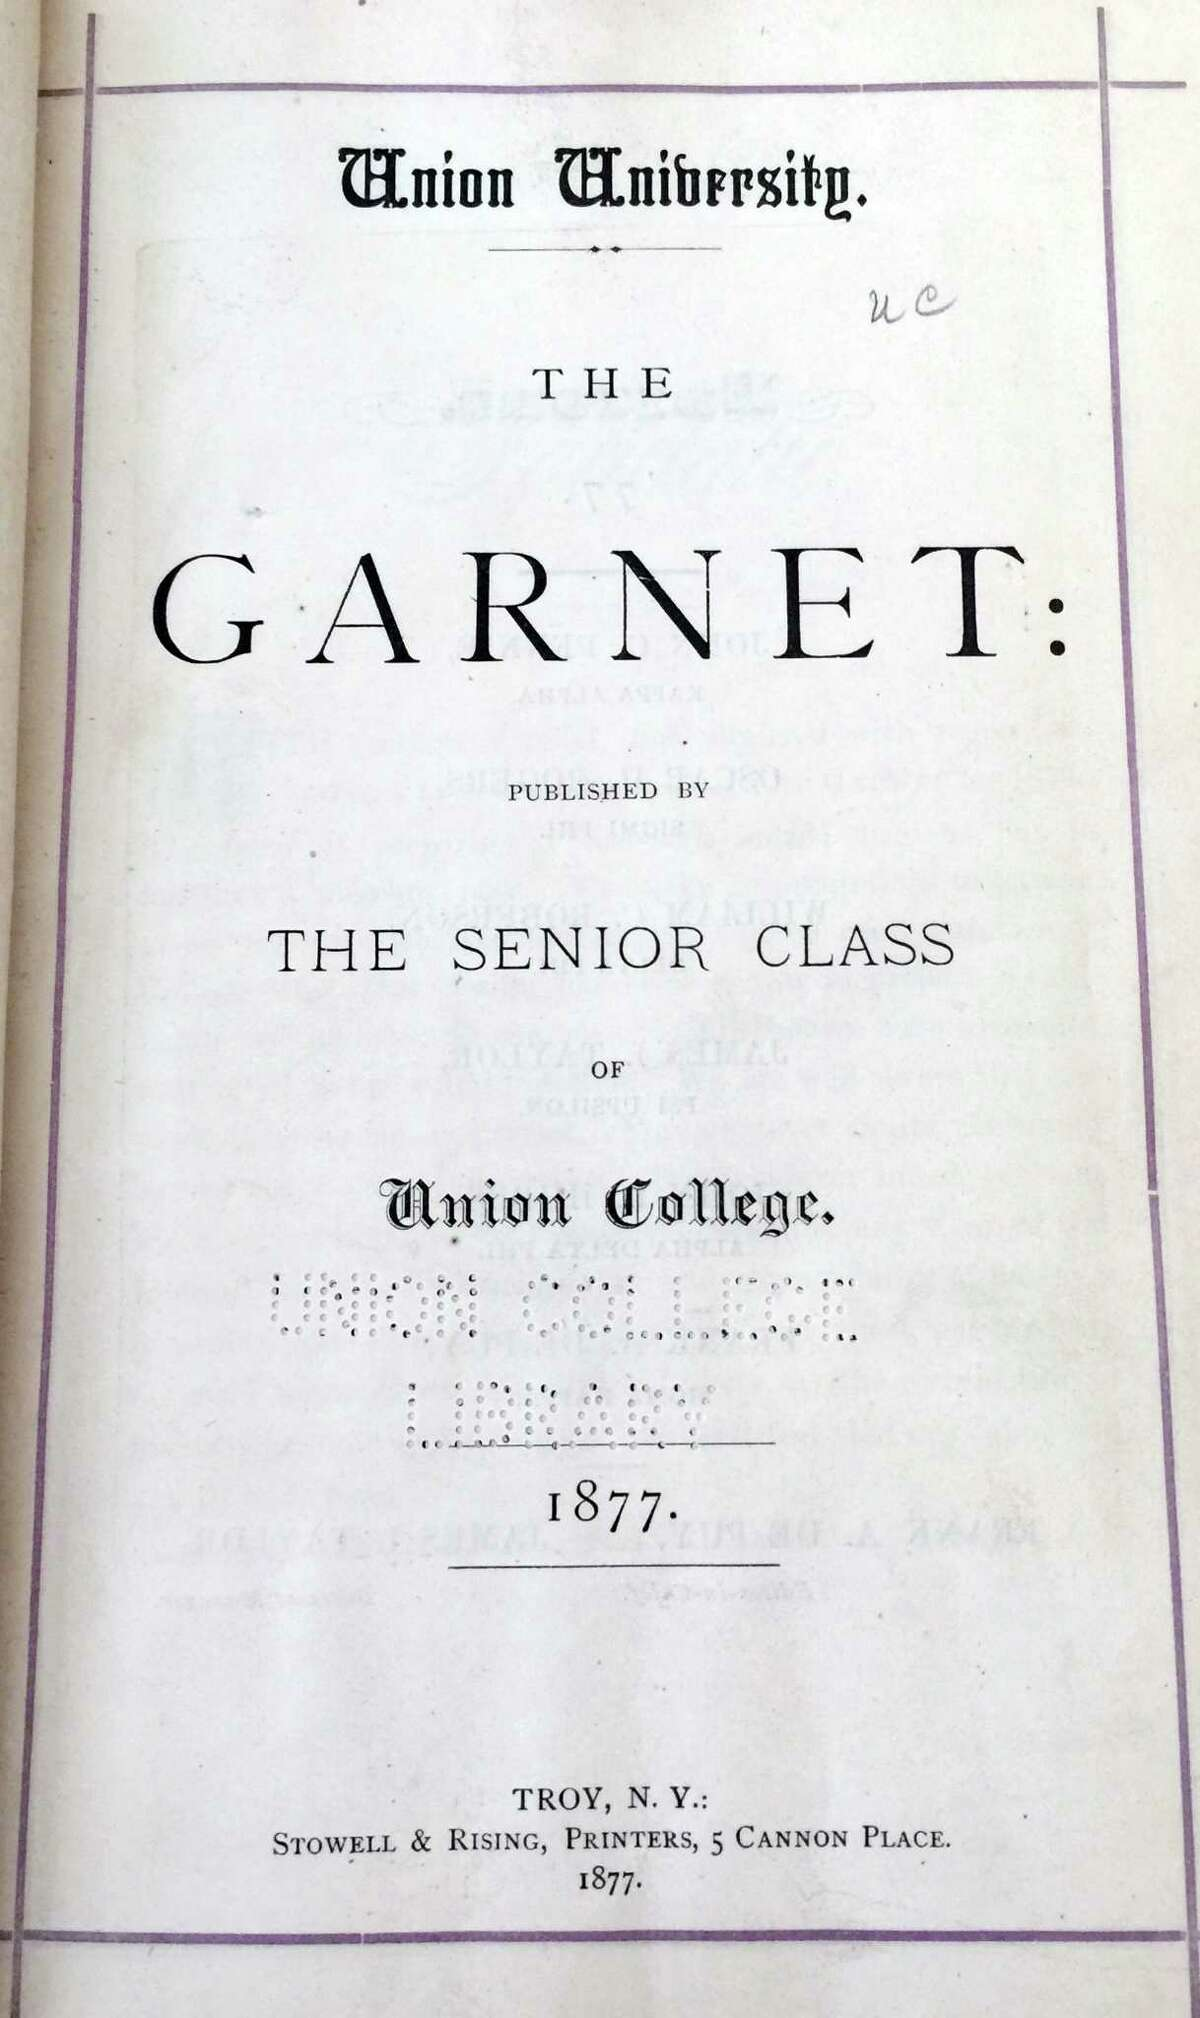 The inside cover of the first ever issue of The Garnet, the Union College yearbook, which was printed in 1877.